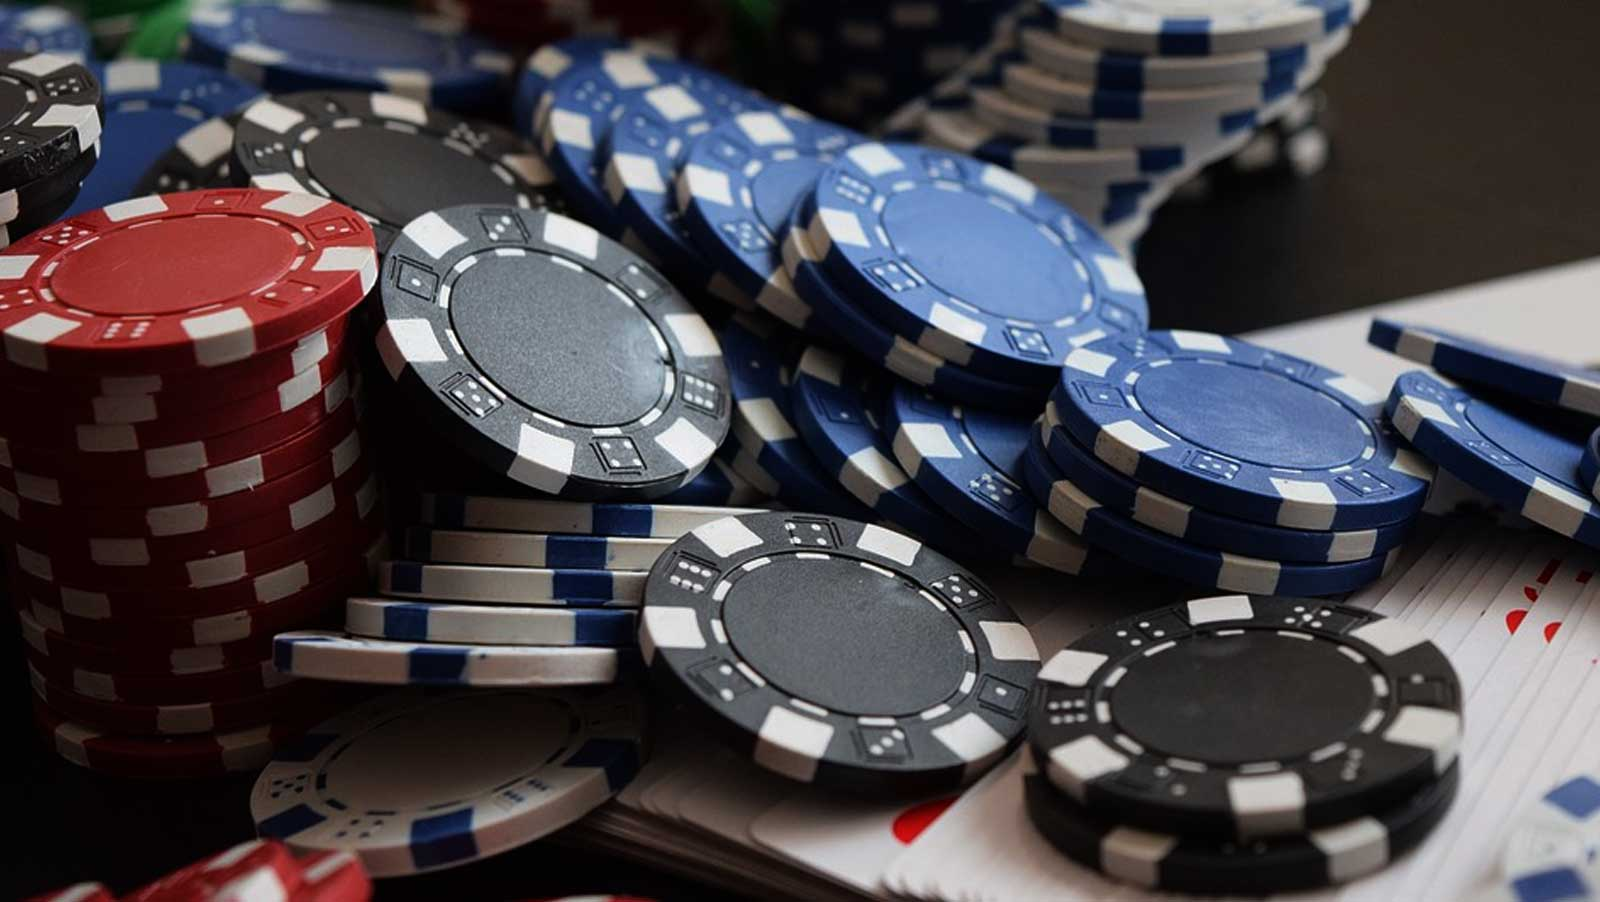 Delhi police bust illegal casino, arrests 58